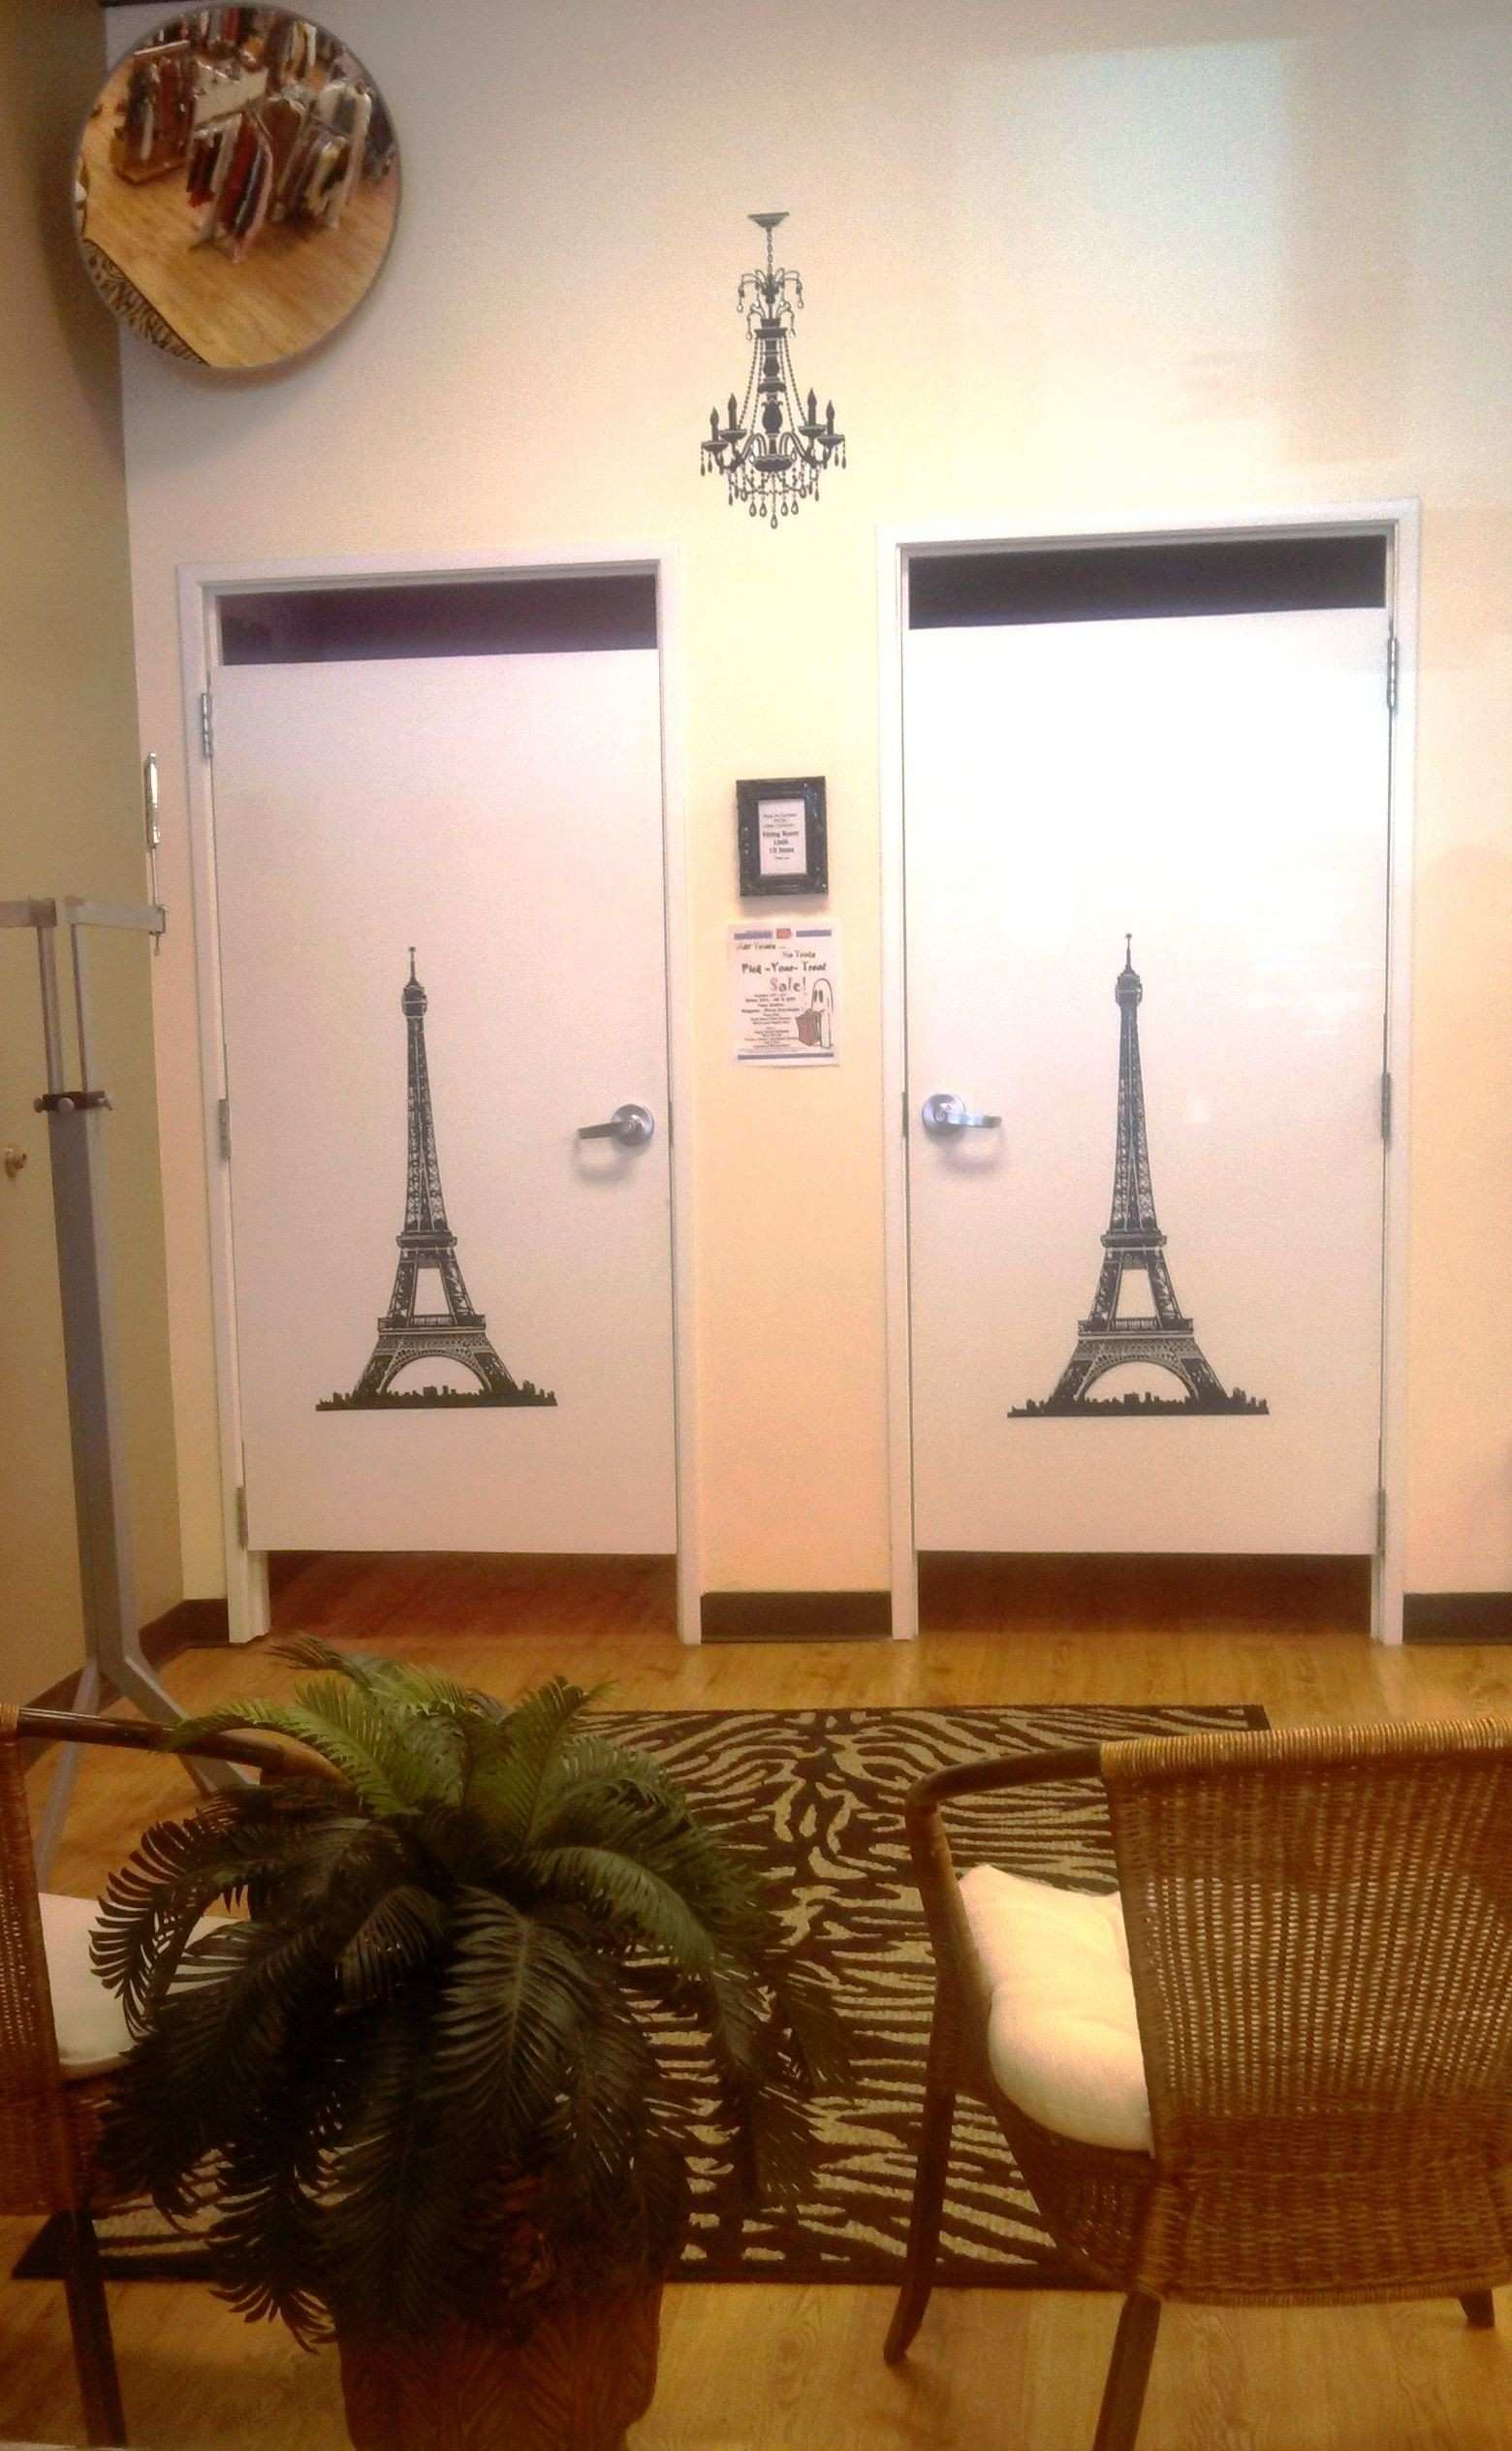 This is our fitting room area ce again we added some wall decals